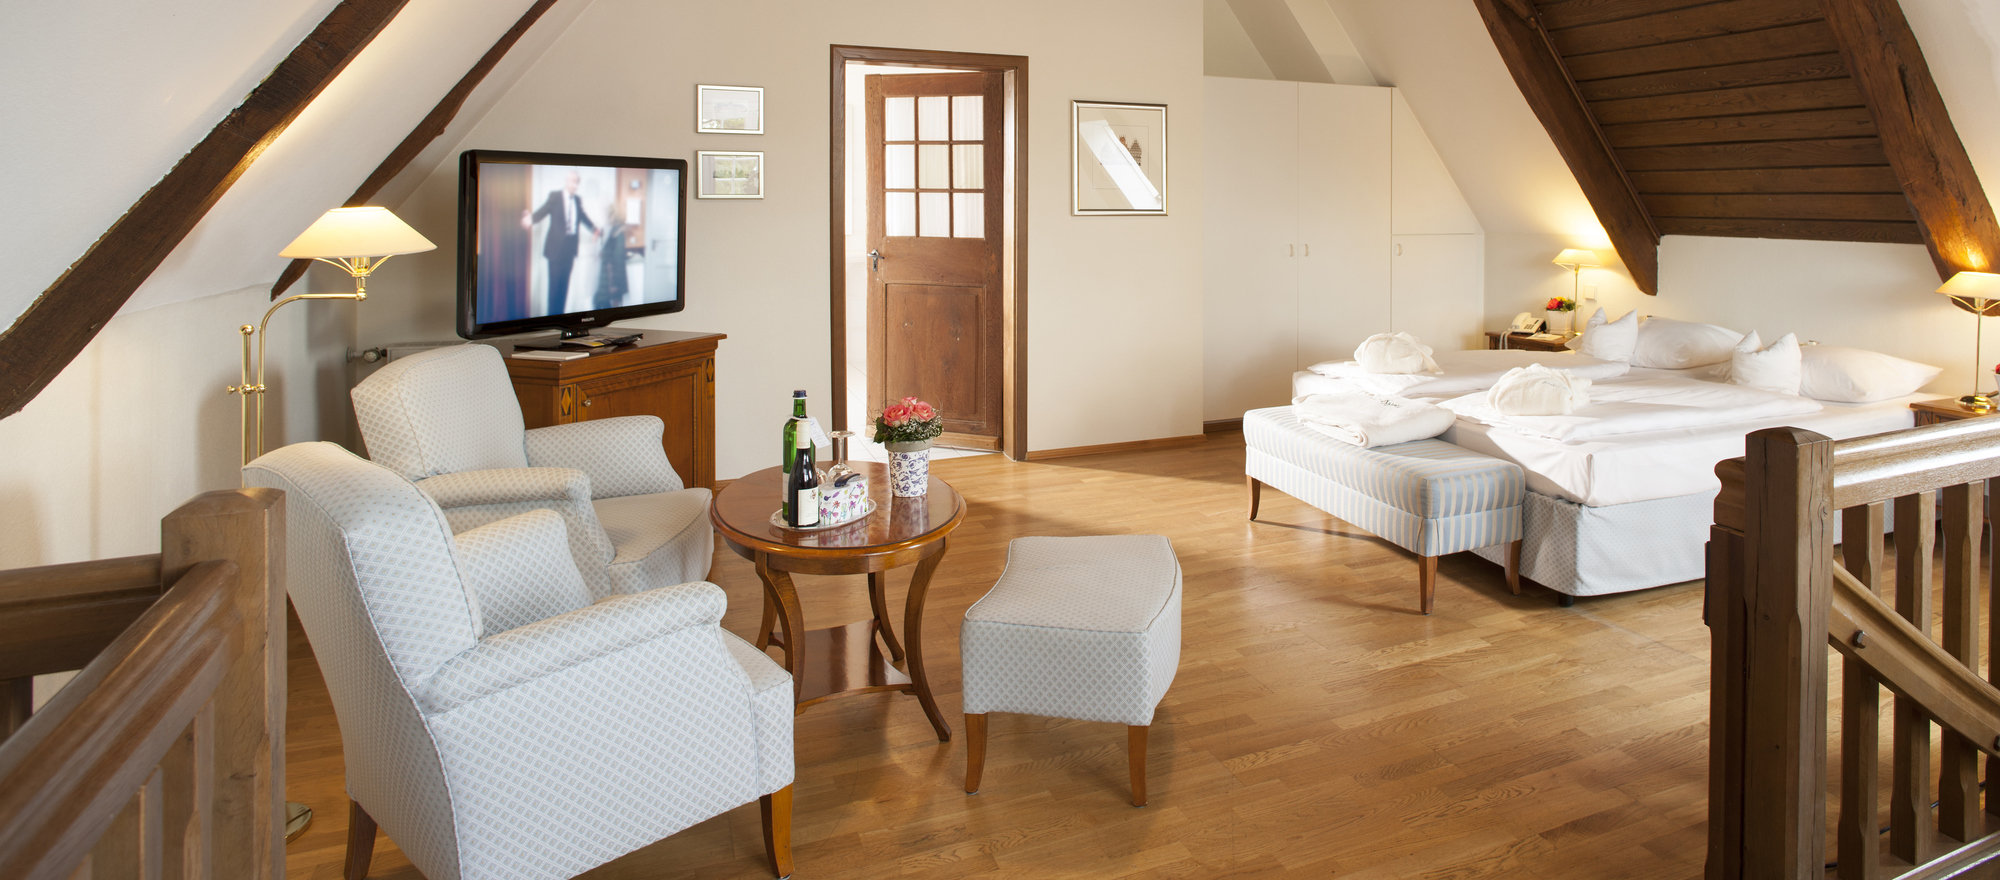 Suite over two floors connected with wooden stairs at the 4-star-superior hotel Ringhotel Landhaus Eggert in Muenster